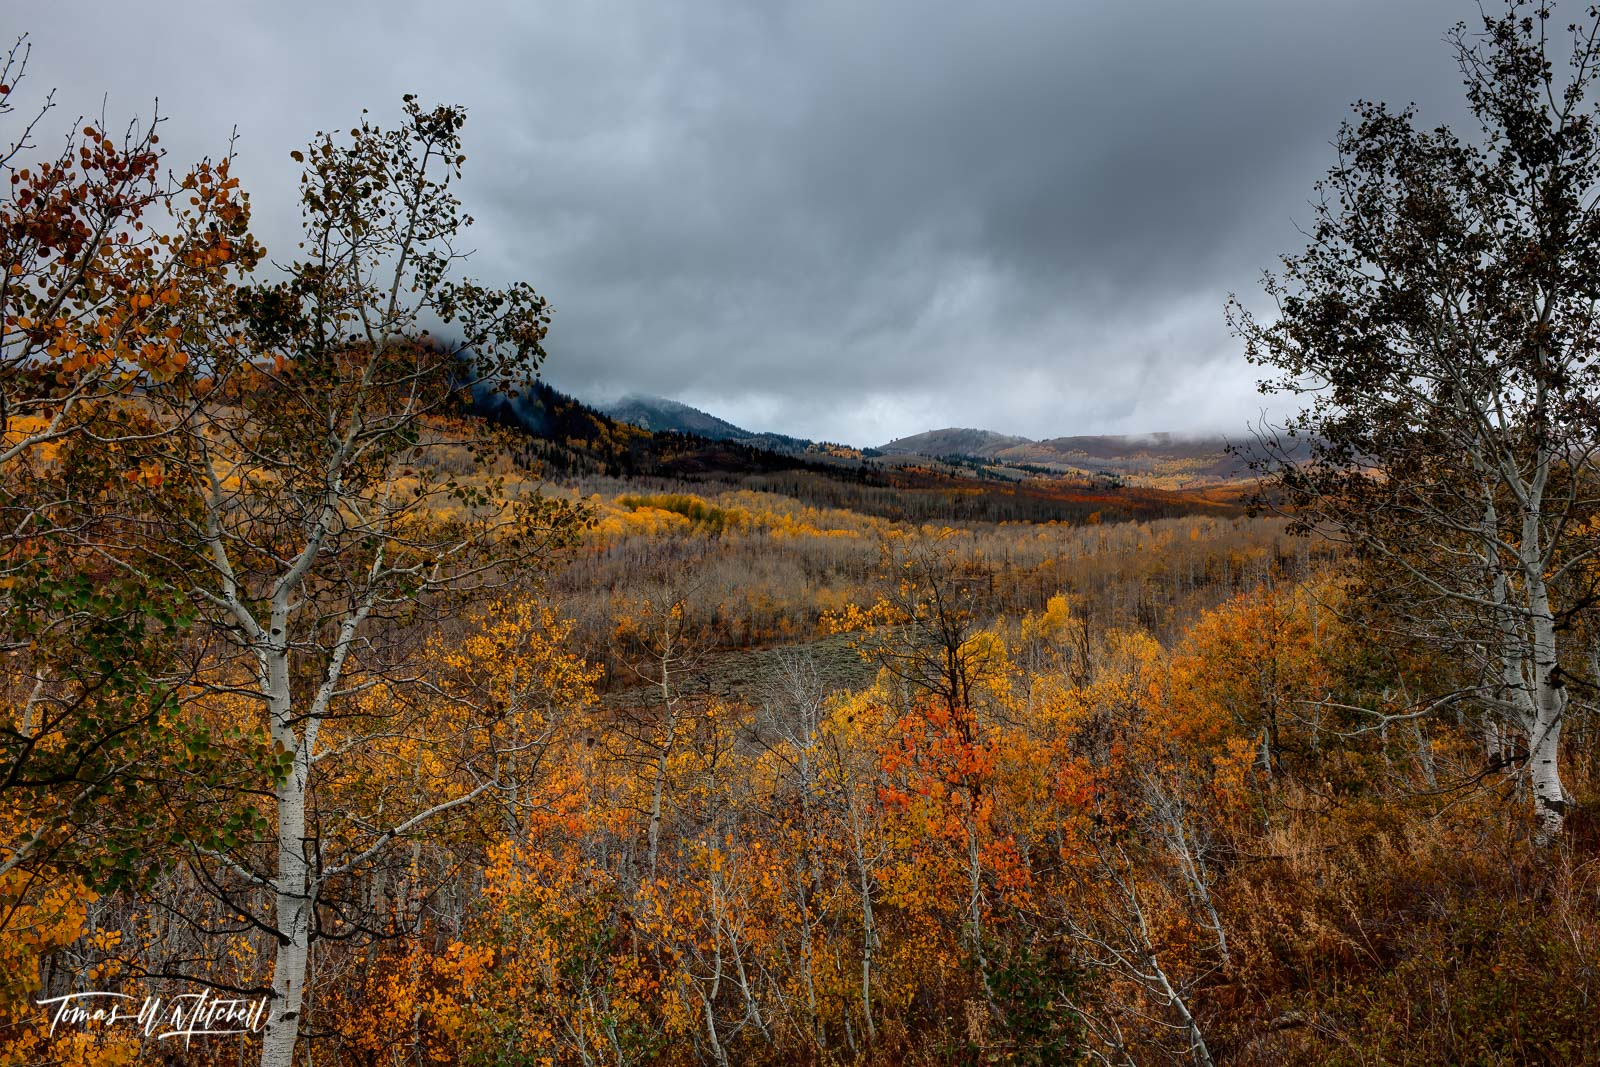 limited edition, fine art, prints, photographing, autumn, wasatch mountain state park, utah, gloom, fall colors, storm clouds, mountains, orange, yellow, quaking aspens, forests, gloom, photo